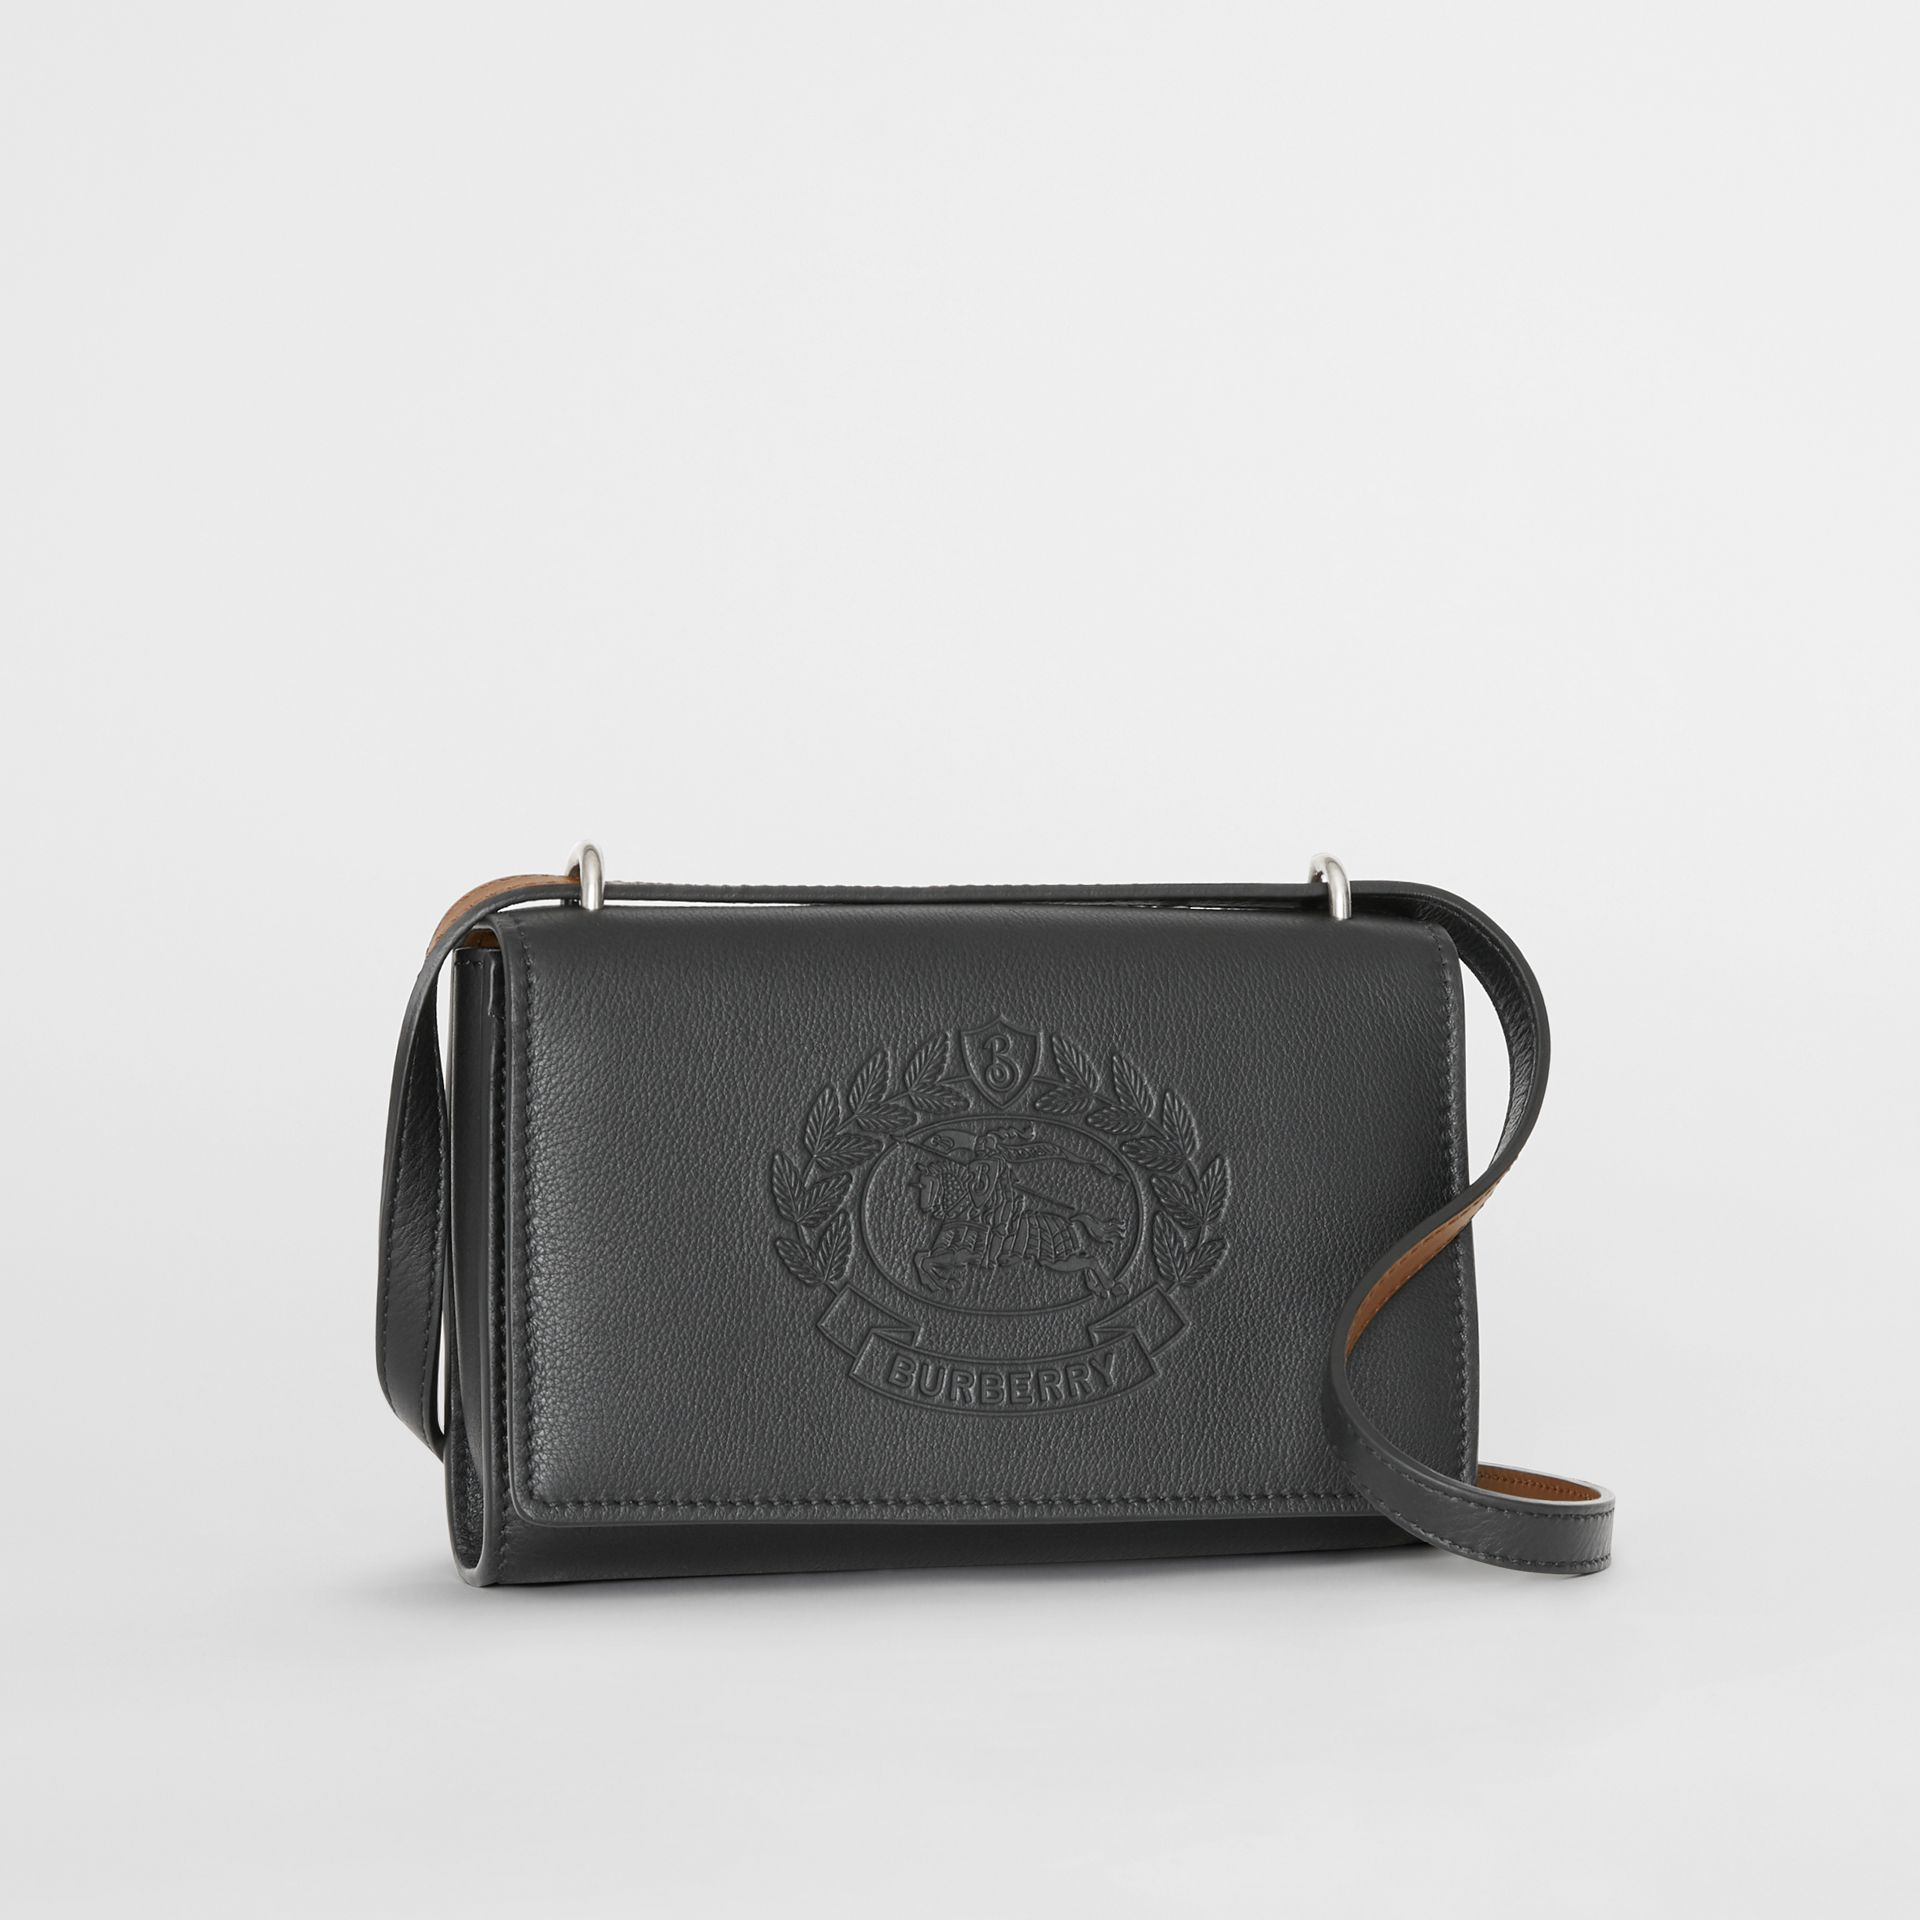 Embossed Crest Leather Wallet with Detachable Strap in Black - Women | Burberry - gallery image 6